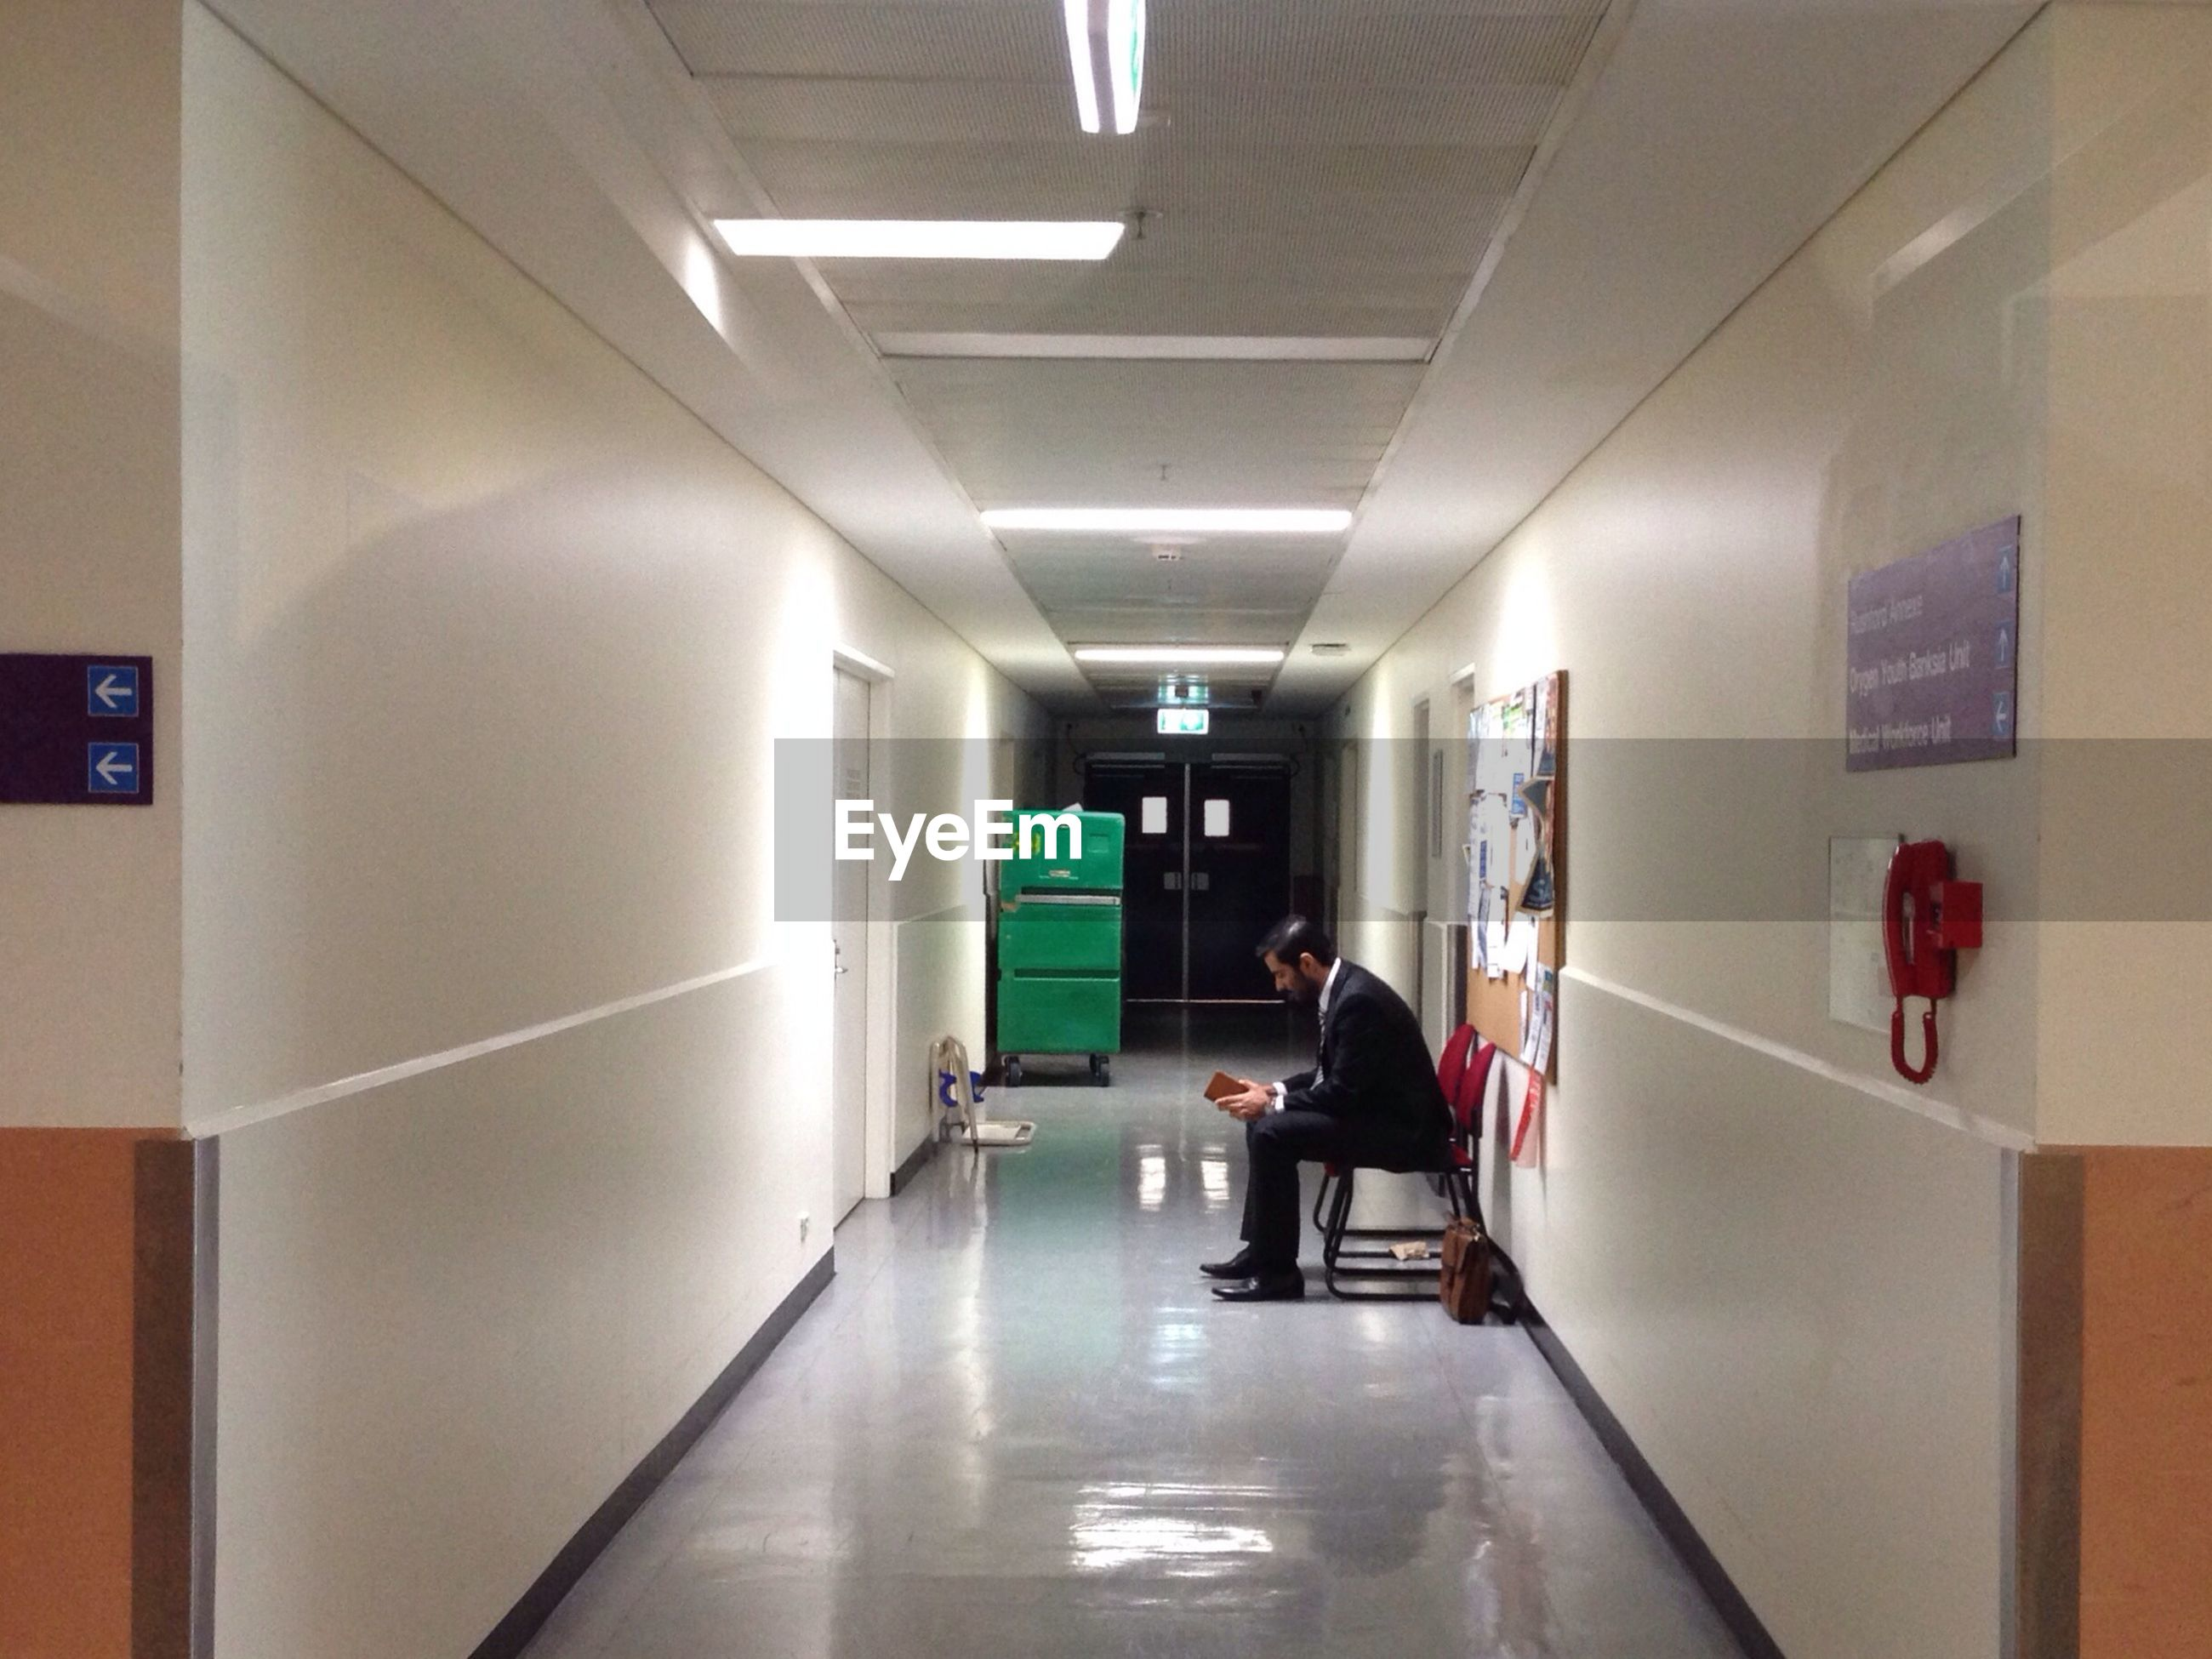 indoors, men, lifestyles, walking, full length, rear view, illuminated, architecture, corridor, built structure, person, leisure activity, the way forward, flooring, wall - building feature, communication, lighting equipment